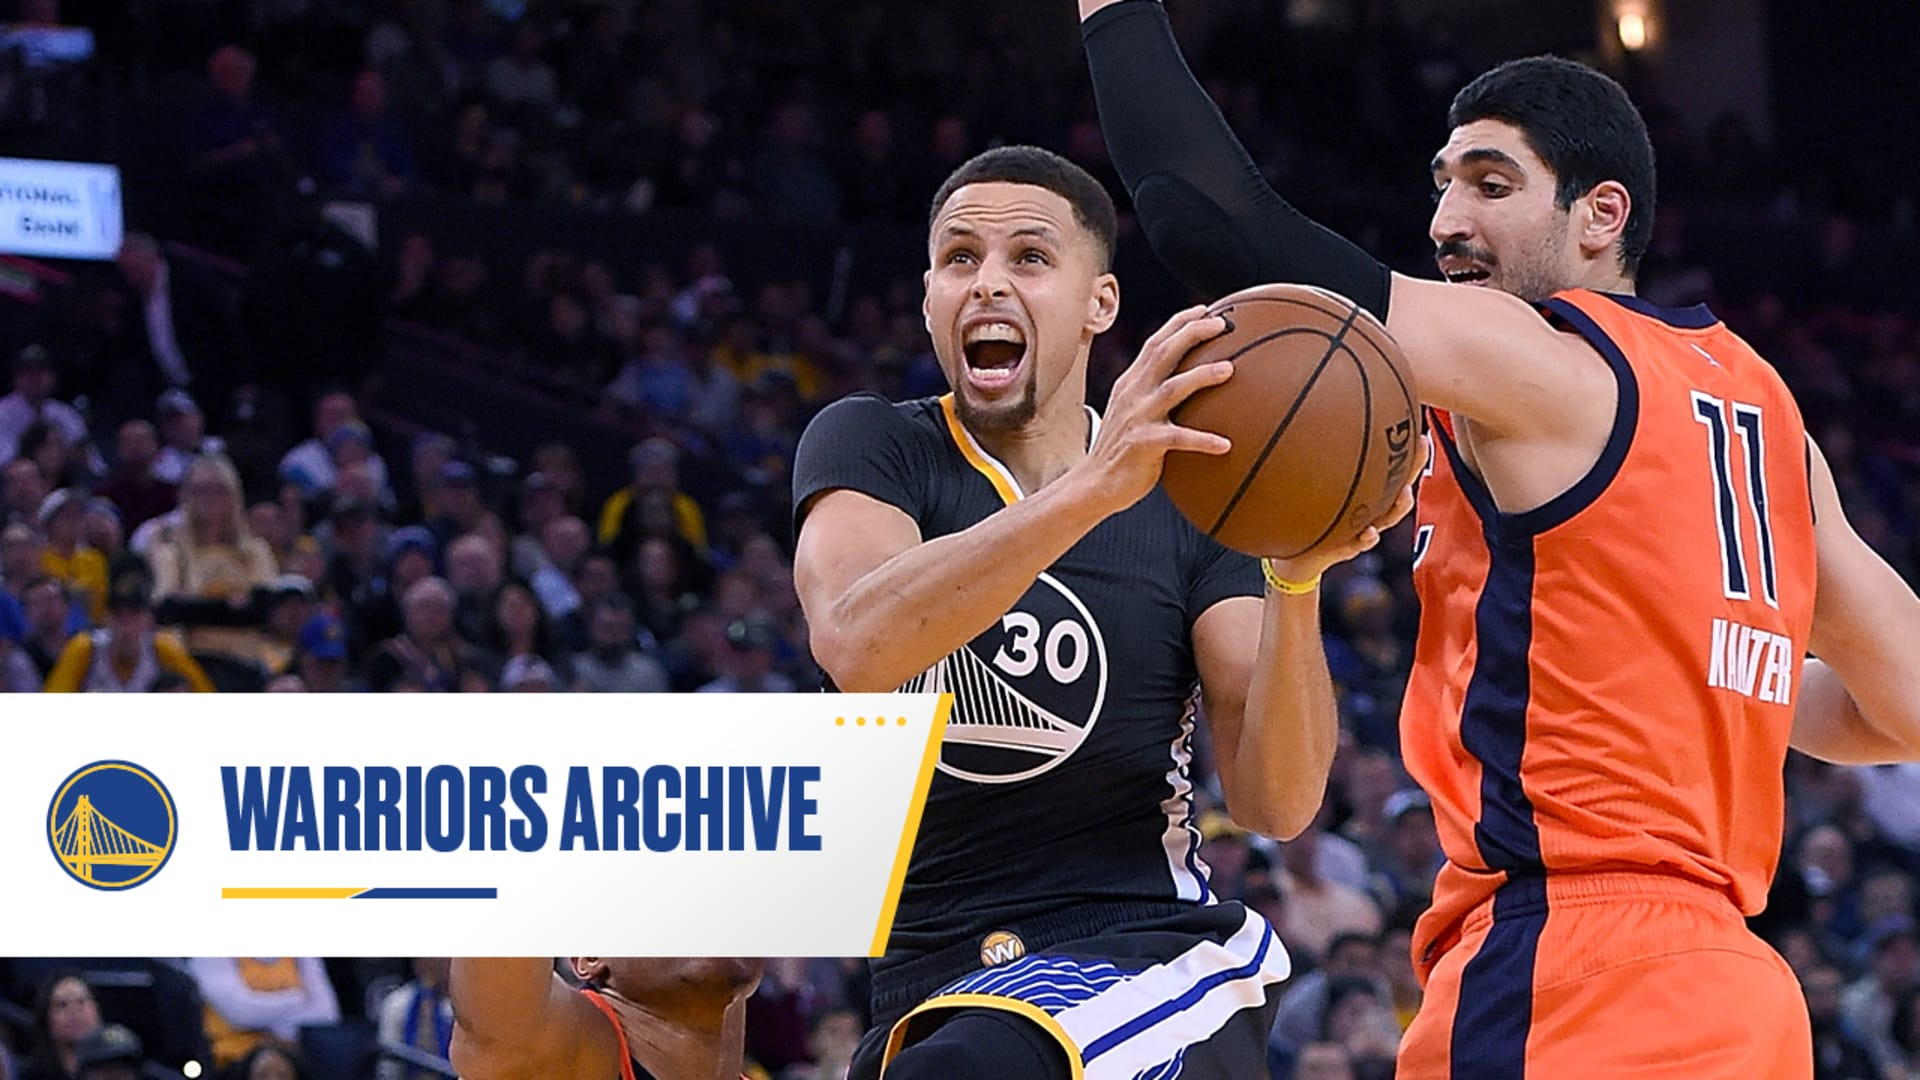 Dubs Extended Home Winning Streak to 41 Games with 116-108 Win Over Thunder